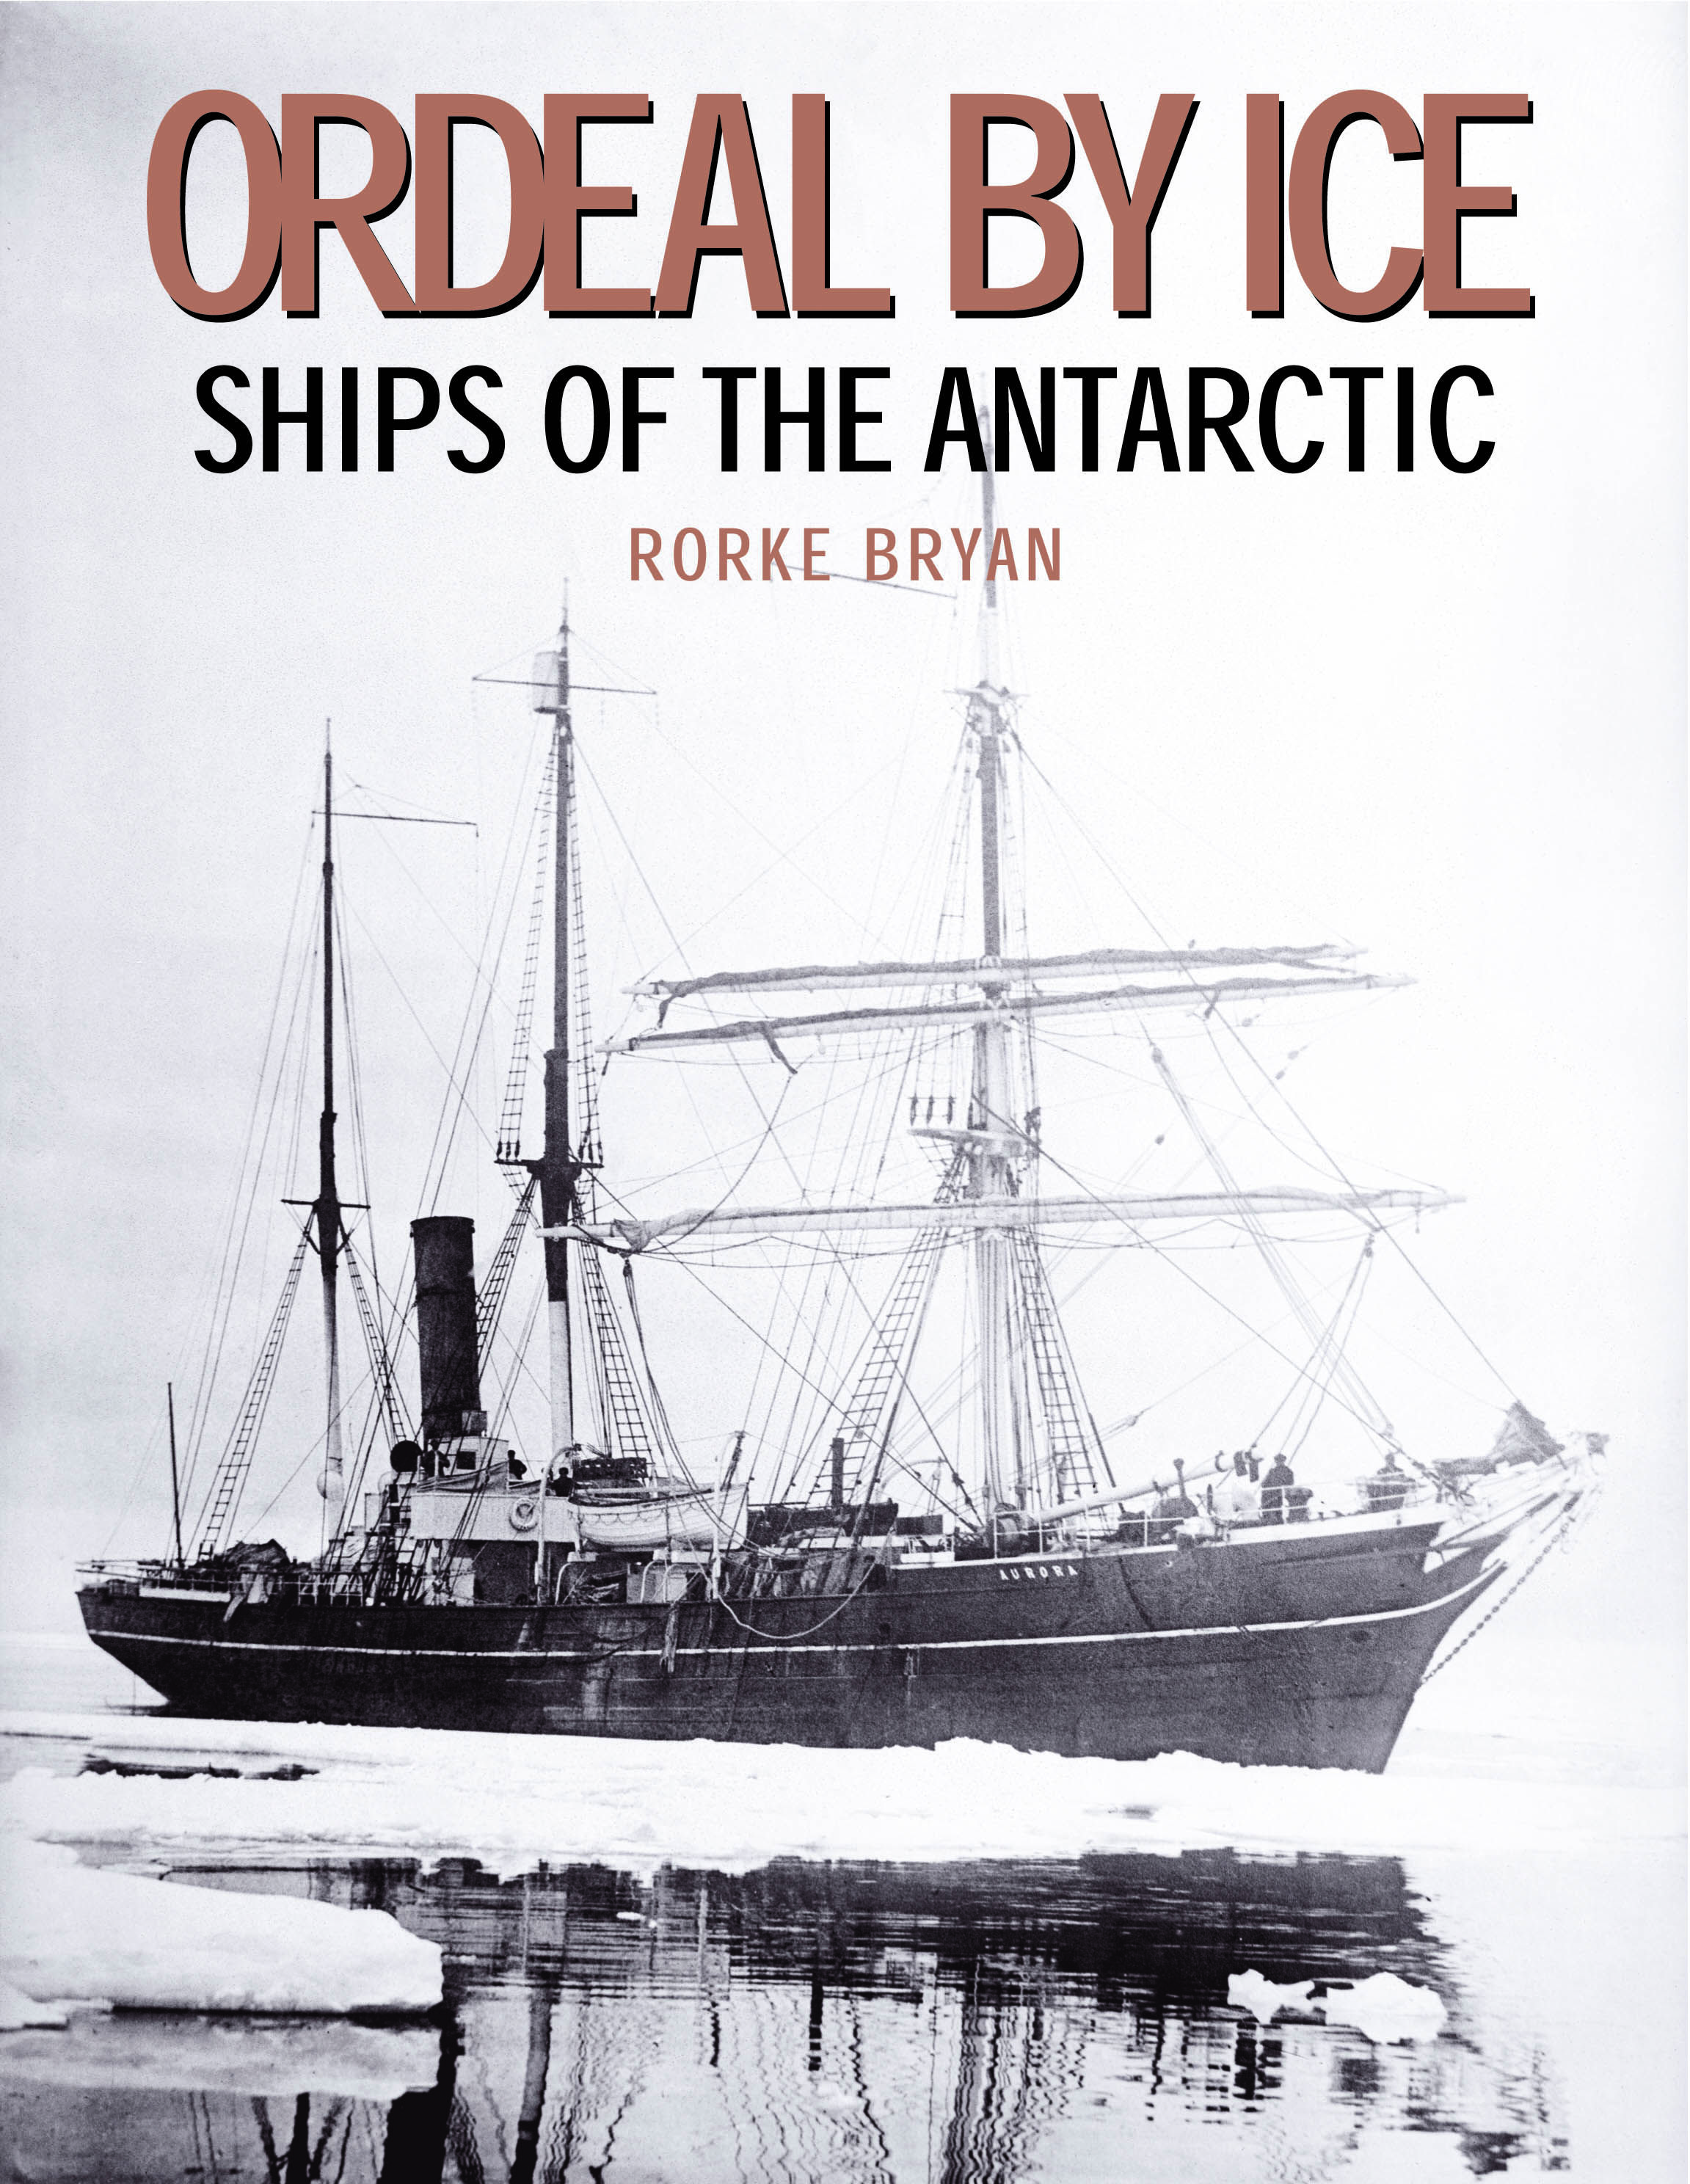 Ordeal by Ice - Ships of the Antarctic   by Rorke Bryan